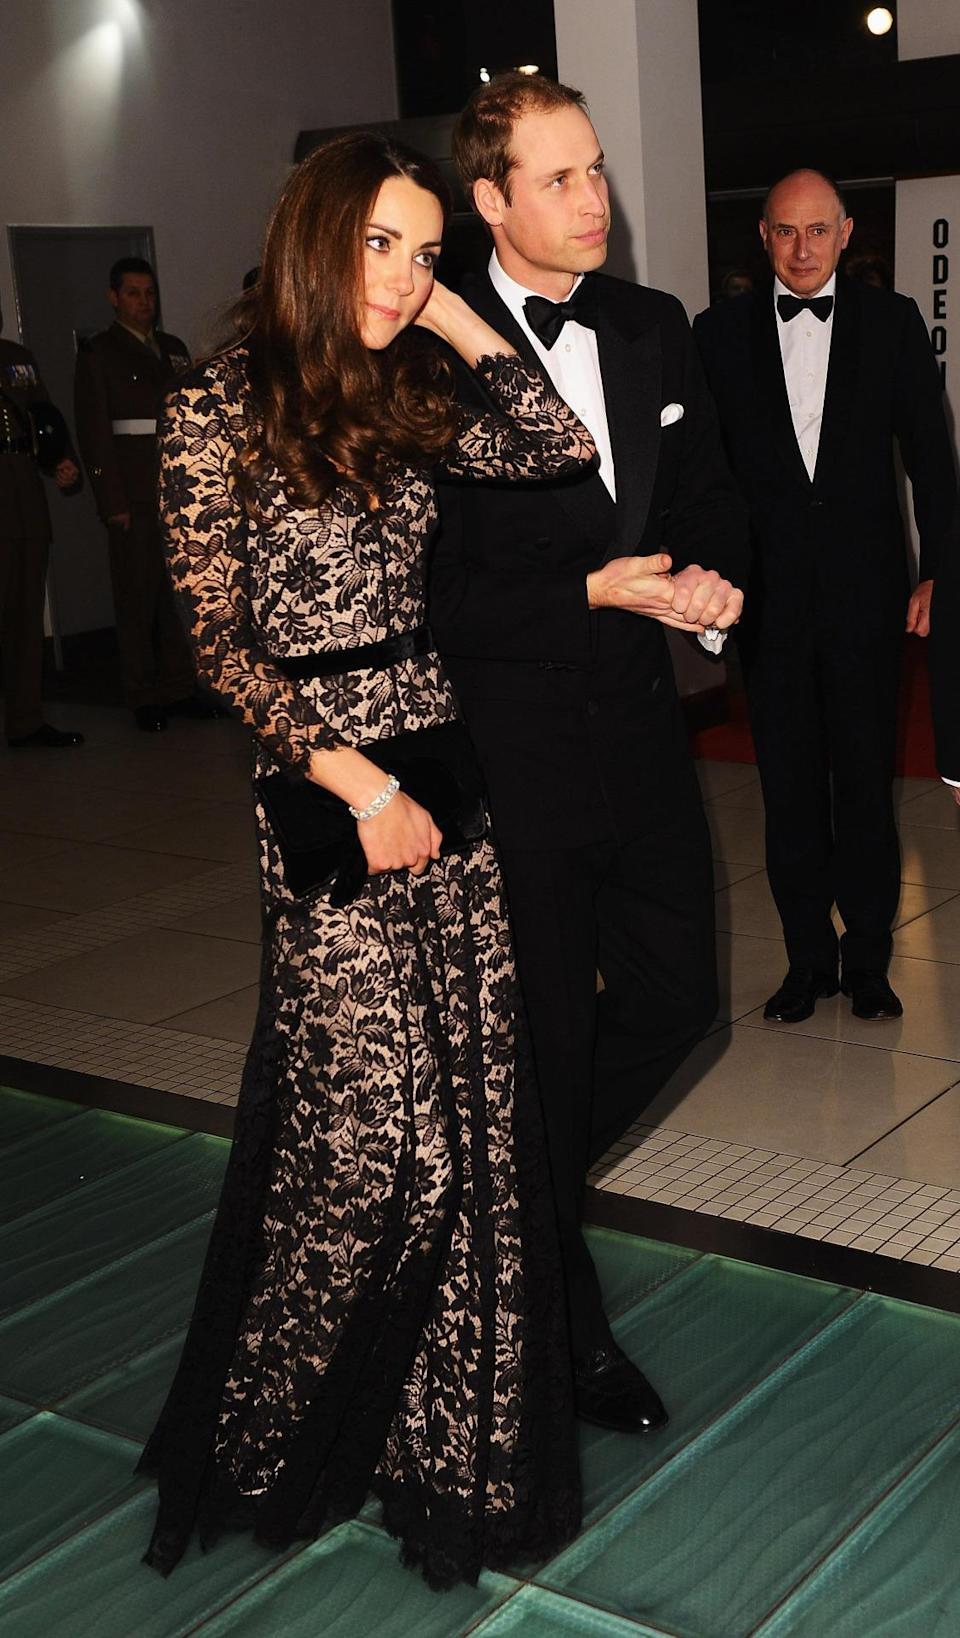 <p>Kate opted for a black lace dress by Temperley for the premiere of <i>War Horse</i>. She accessorised with a black velvet clutch by Mascaro.</p><p><i>[Photo: PA]</i></p>